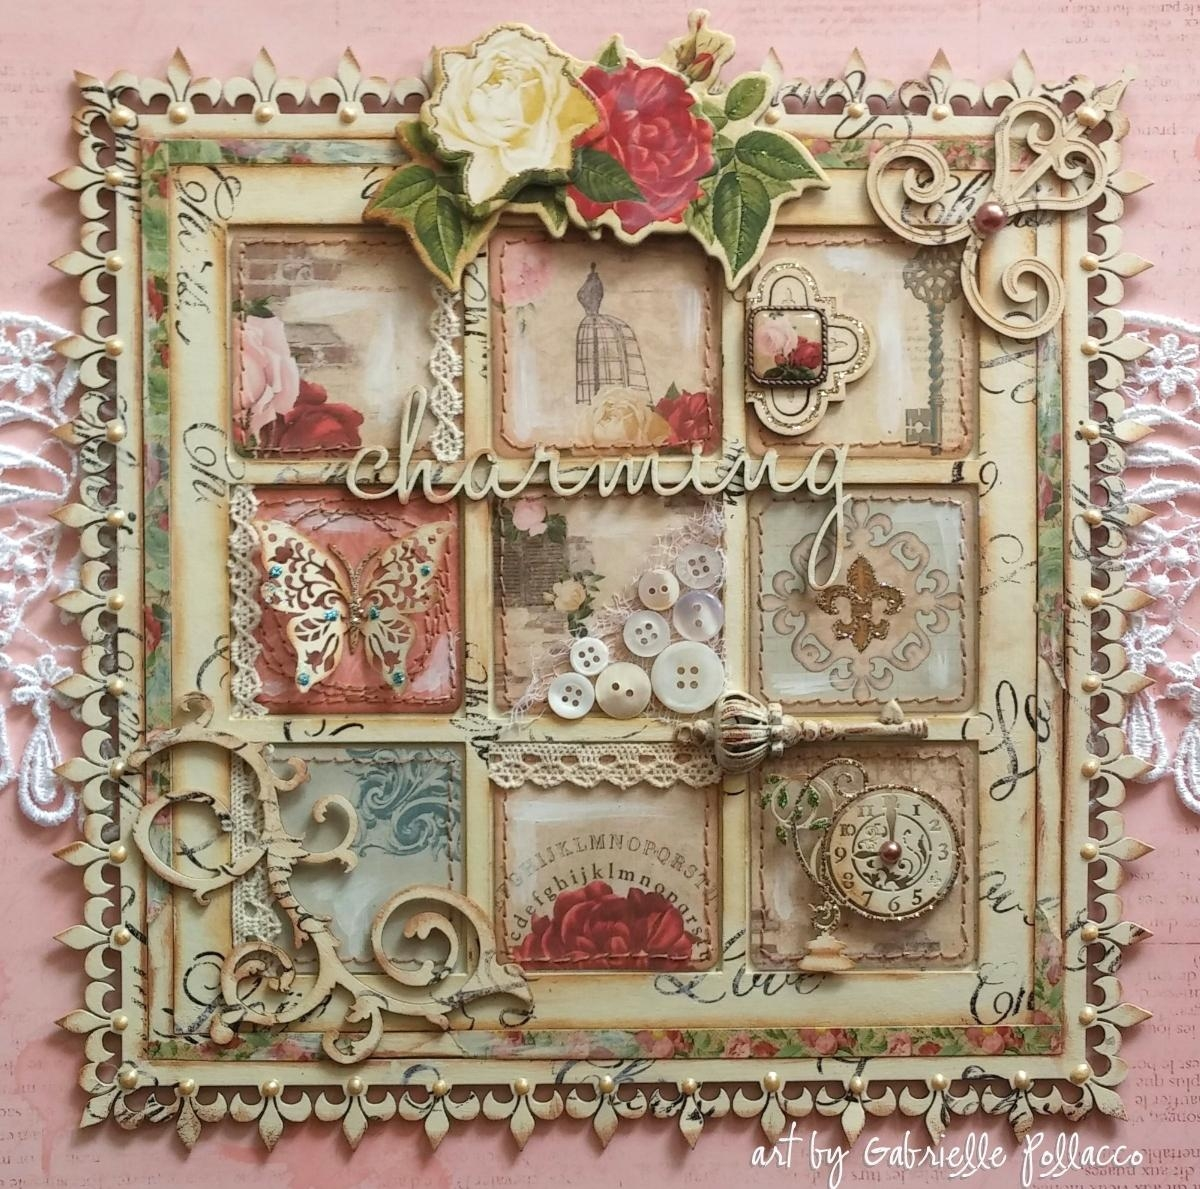 Bobunny: Shabby Chic Juliet Wall Art Pertaining To Shabby Chic Wall Art (Image 7 of 20)